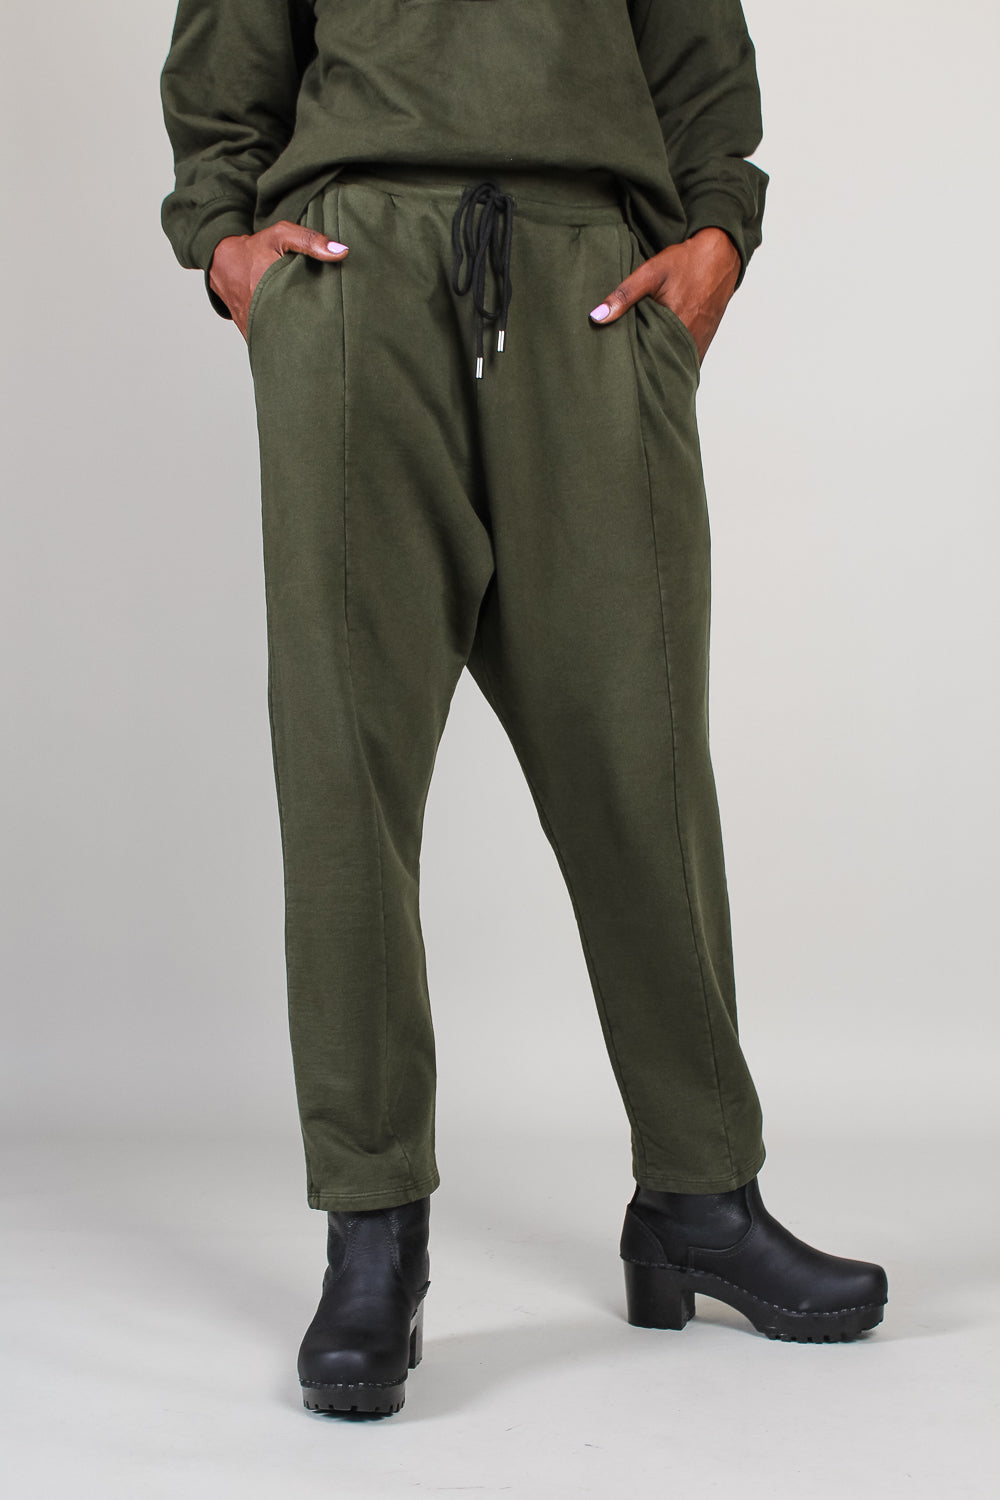 Hera Sweatpant in Forest